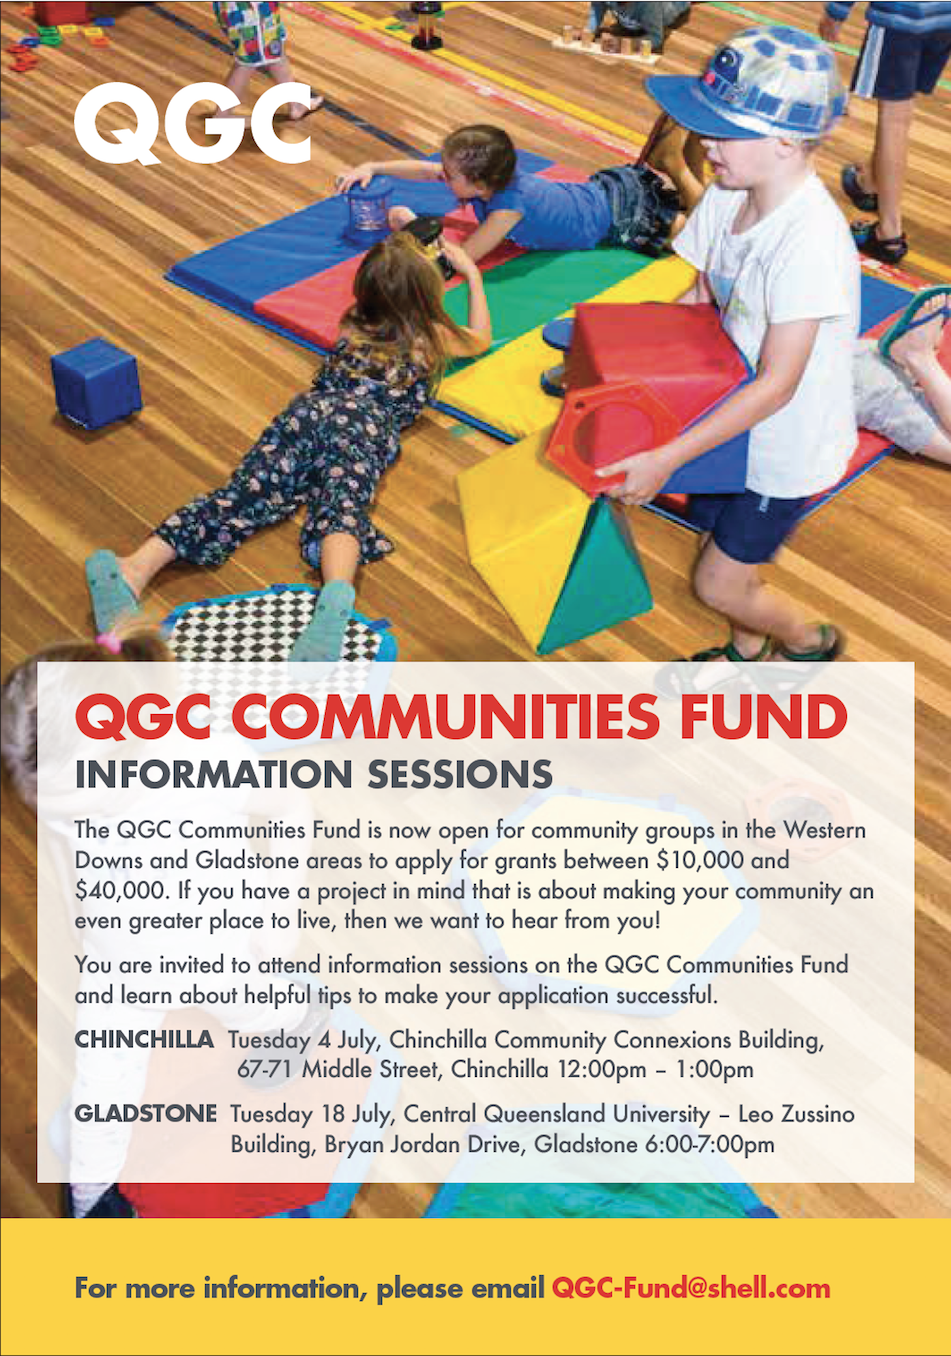 QGC Communities Fund